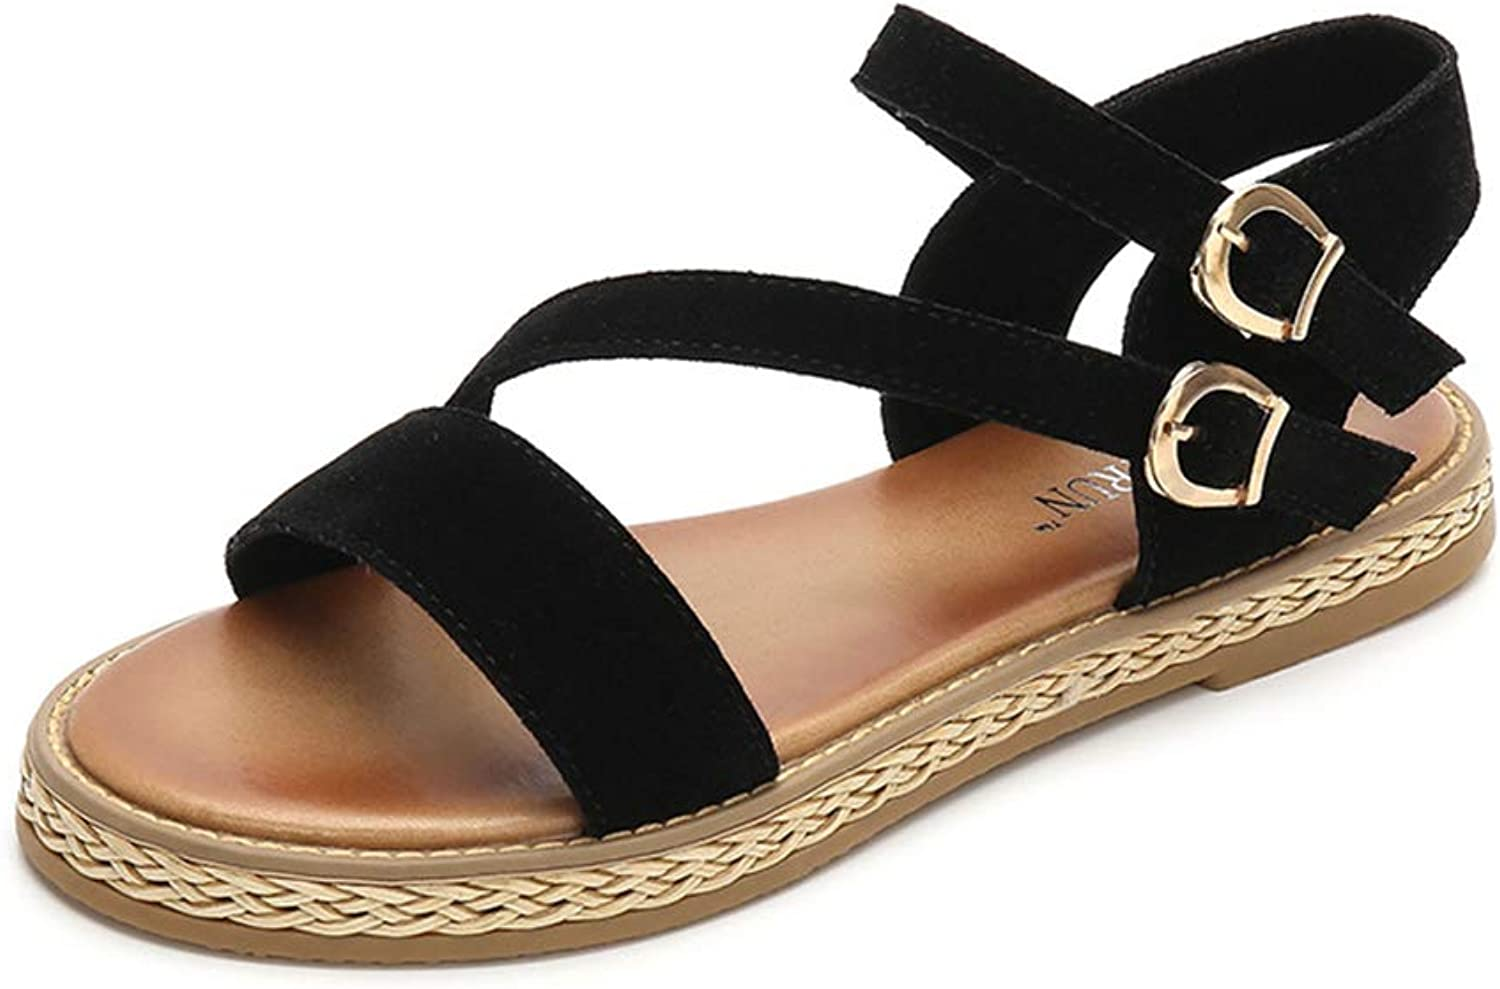 Tuoup Womens Leather Fashion Flat Summer Ankle Strap Sandals